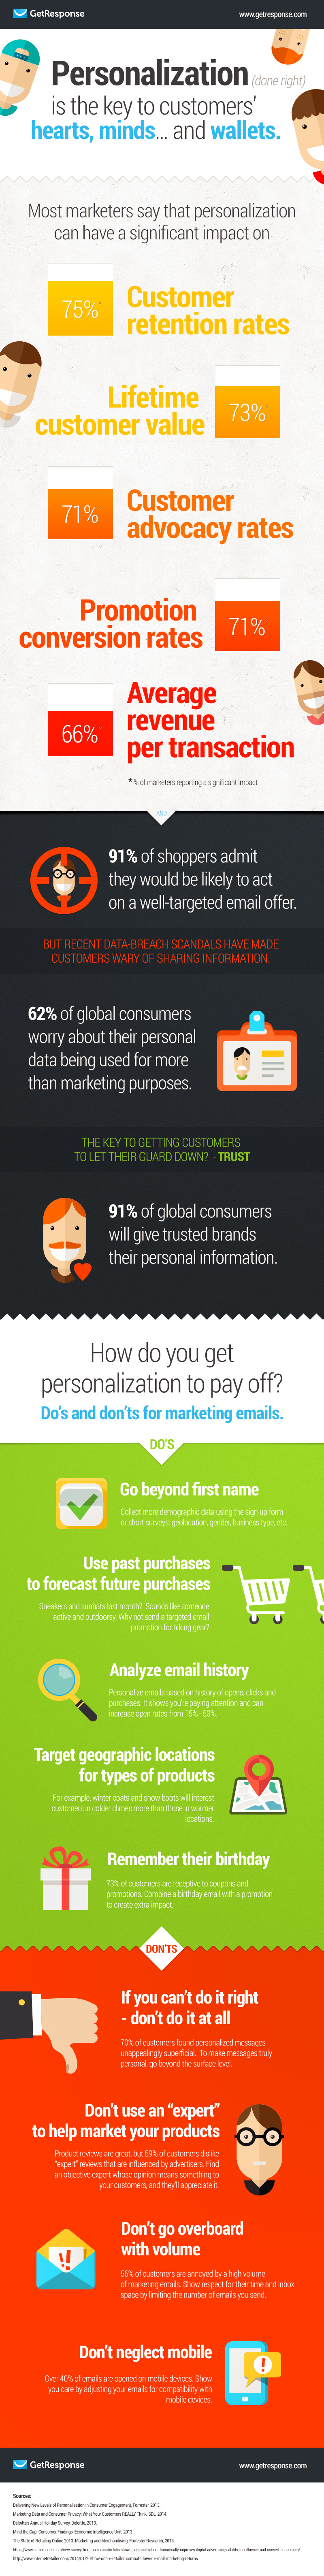 Personalization the Key to Customers Hearts, Minds and Wallets